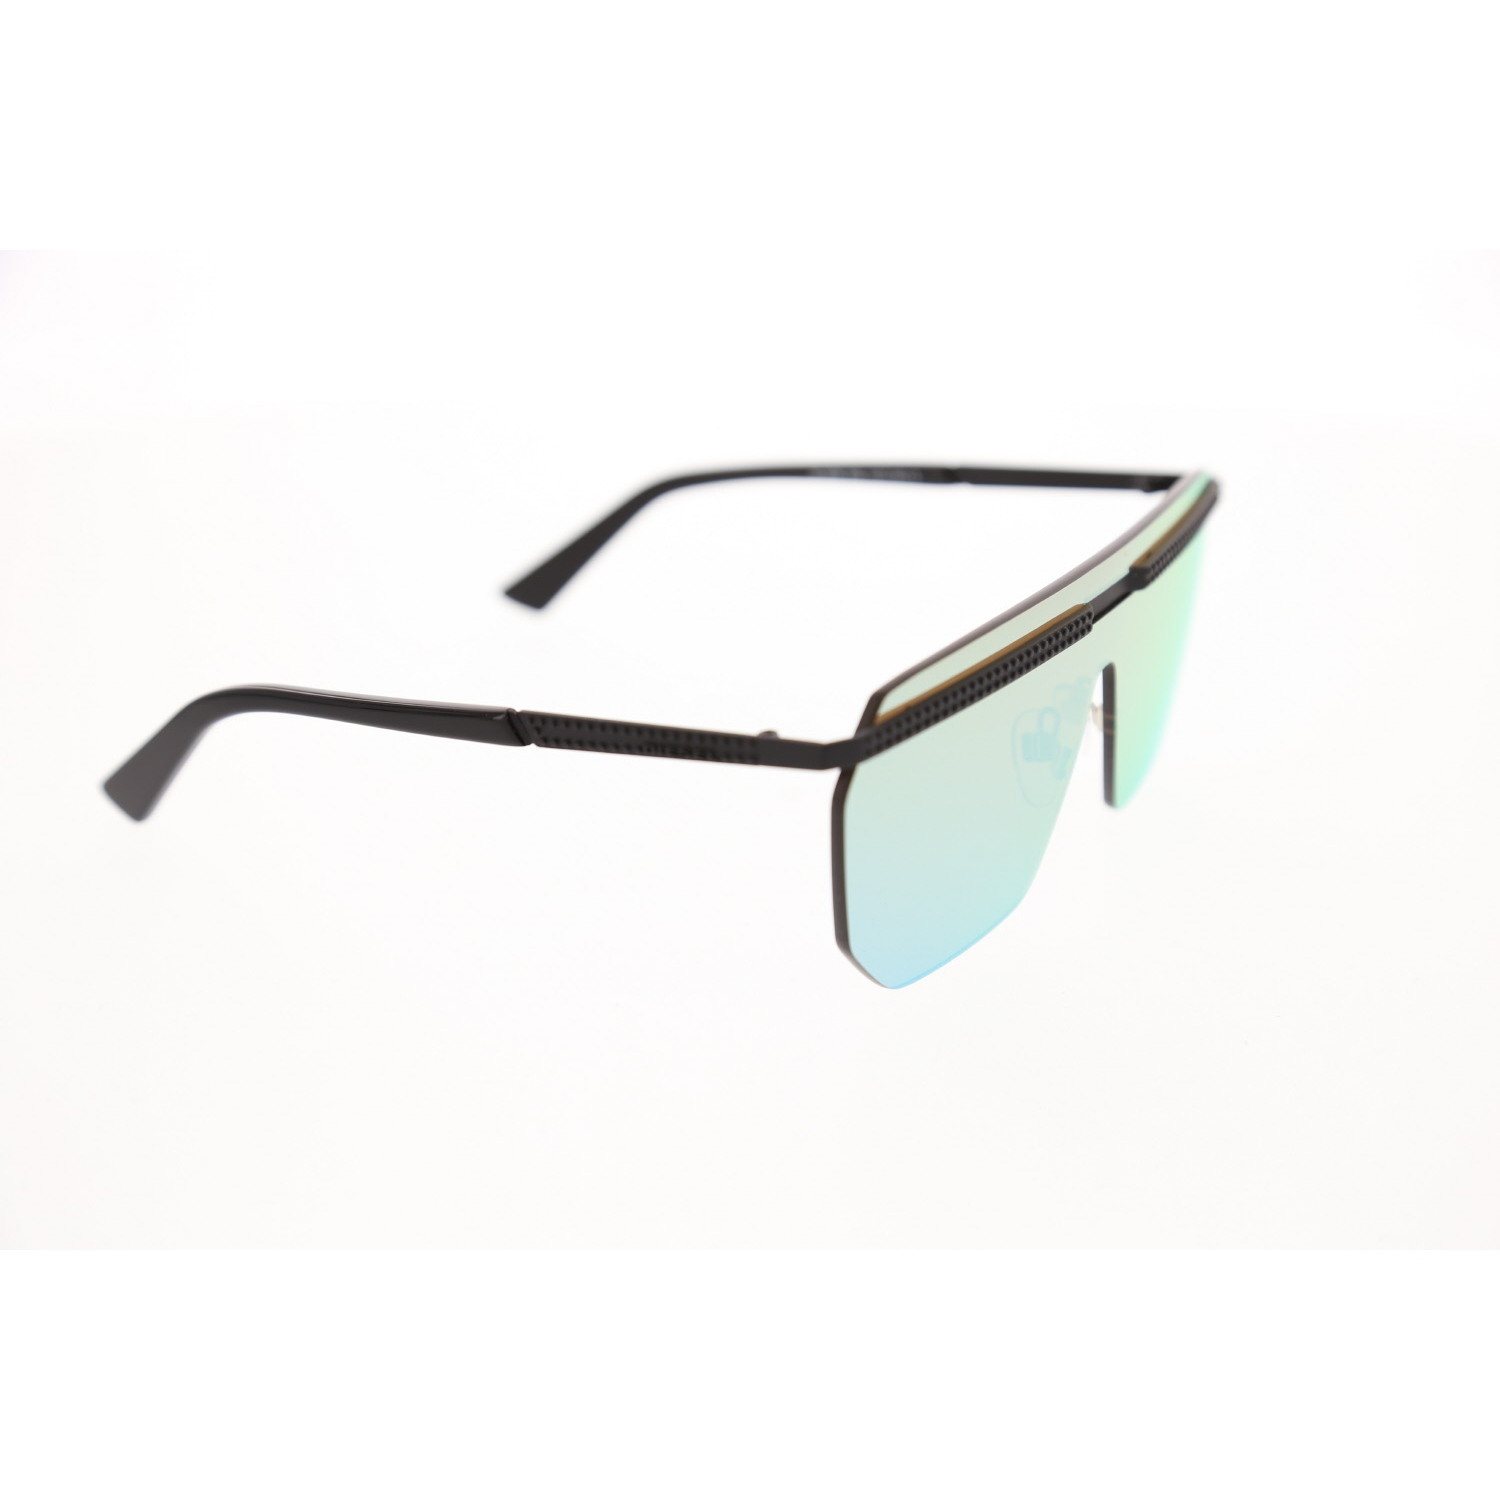 Women's sunglasses dl 0259 GCC unibody black polycarbonate rectangular rectangle 137-16-140 diesel